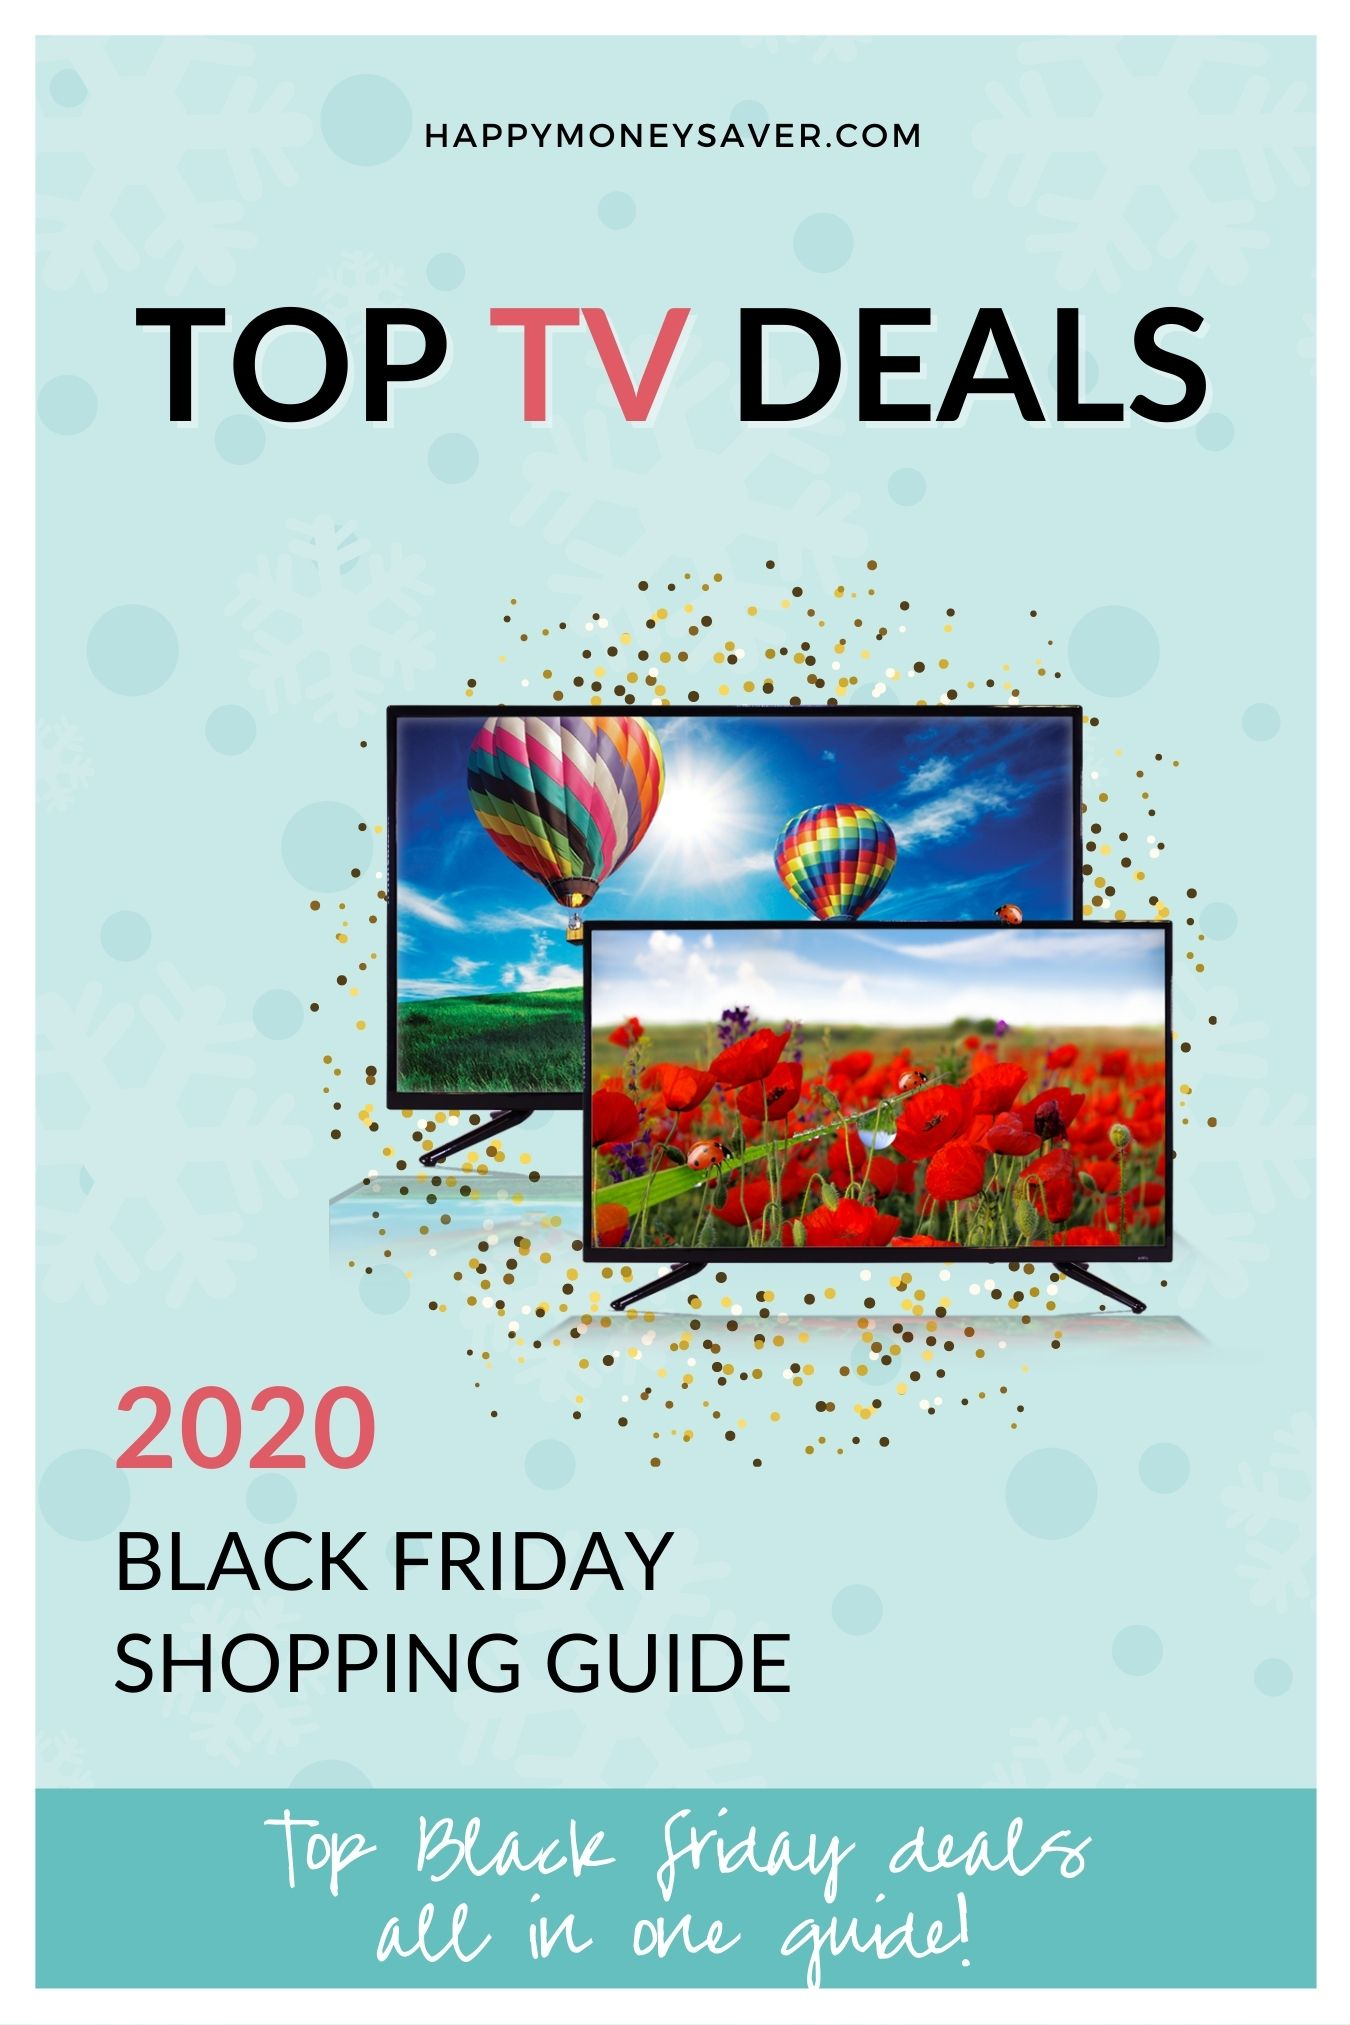 Image of Happymoneysaver's Top TV Deals with two pictures of two tv's and the words 2020 Black Friday Shopping Guide.